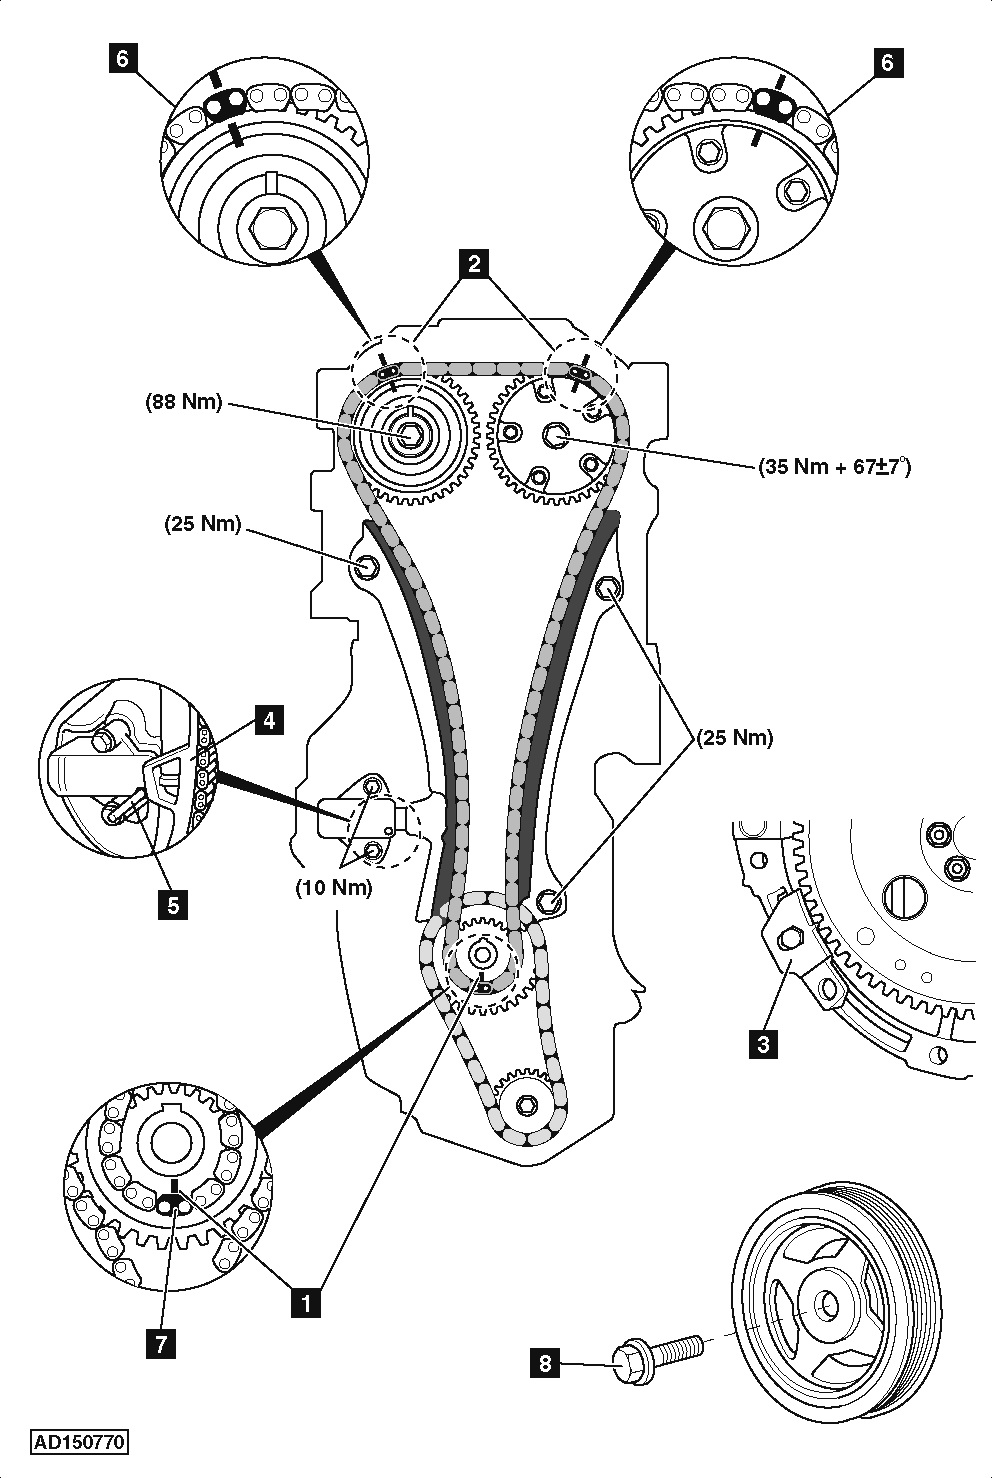 renault clio engine fuse box diagram with 2005 Mercedes E320 Crankshaft Position Sensor Location on 85 Renault Engine Diagram furthermore Renault Master Wiring Diagram Pdf in addition 84 Mercedes Front Suspension Parts Diagram as well 1966 Mustang Wiring Diagrams additionally Megane Fuse Box Layout.